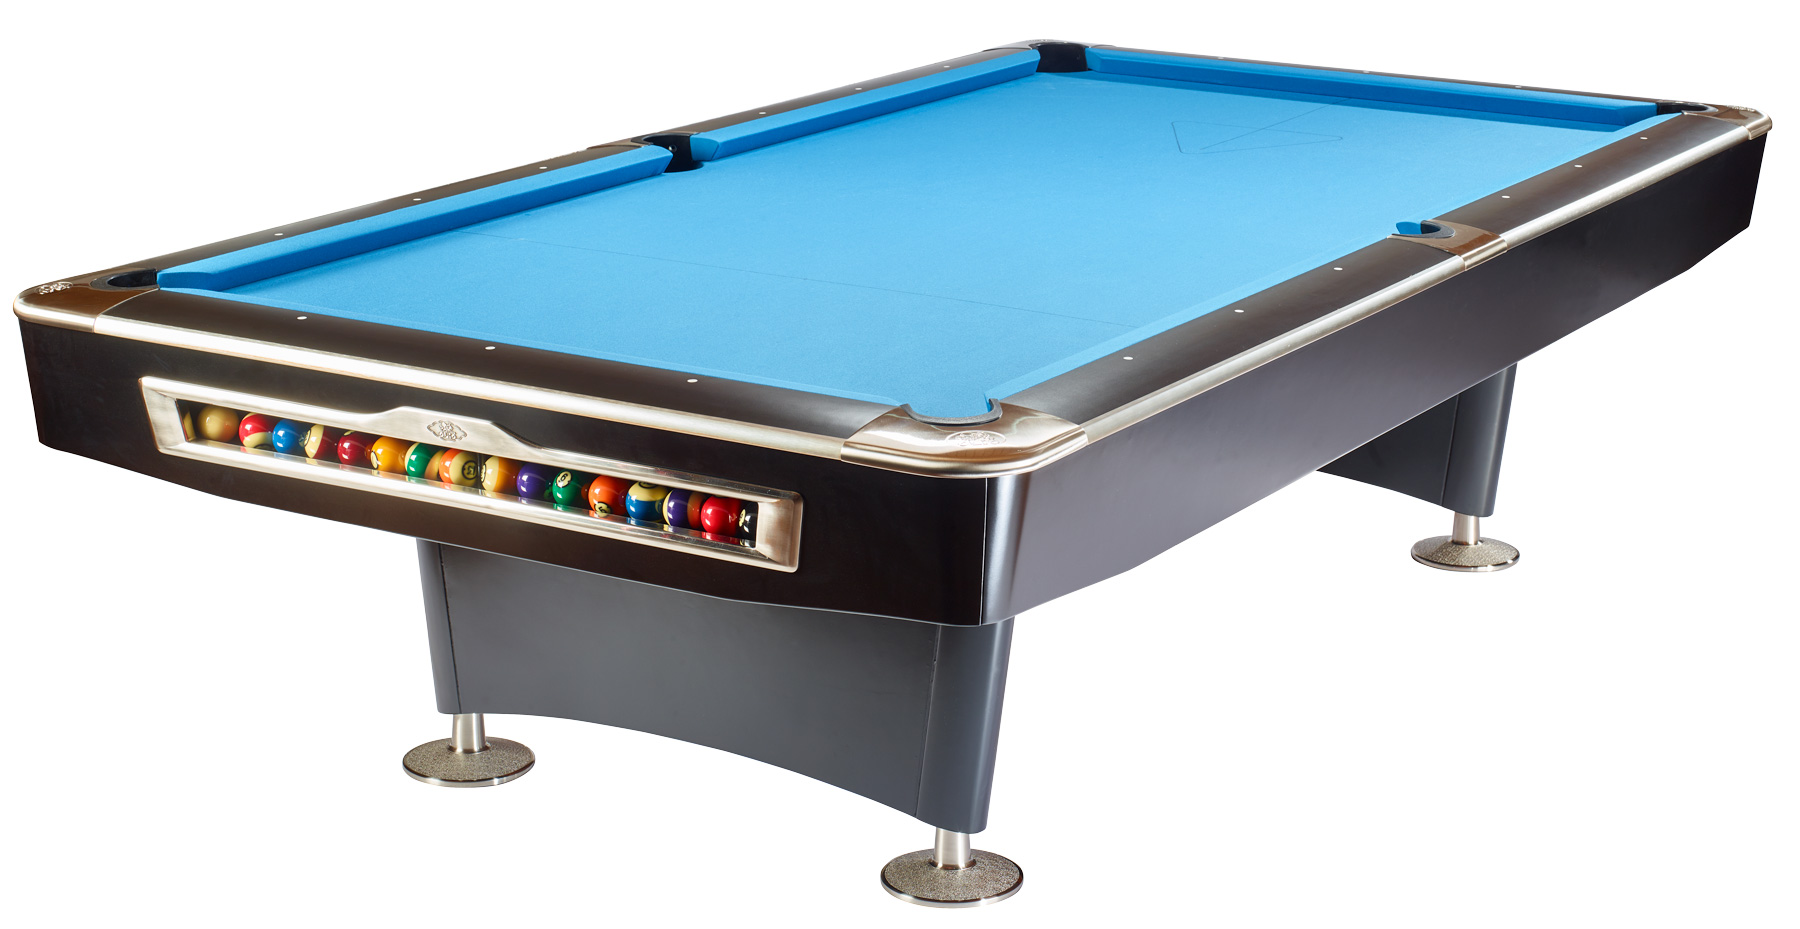 Olio pool table 4809 mattblack 8ft for sale at beckmann billiards shop - Photos of pool tables ...